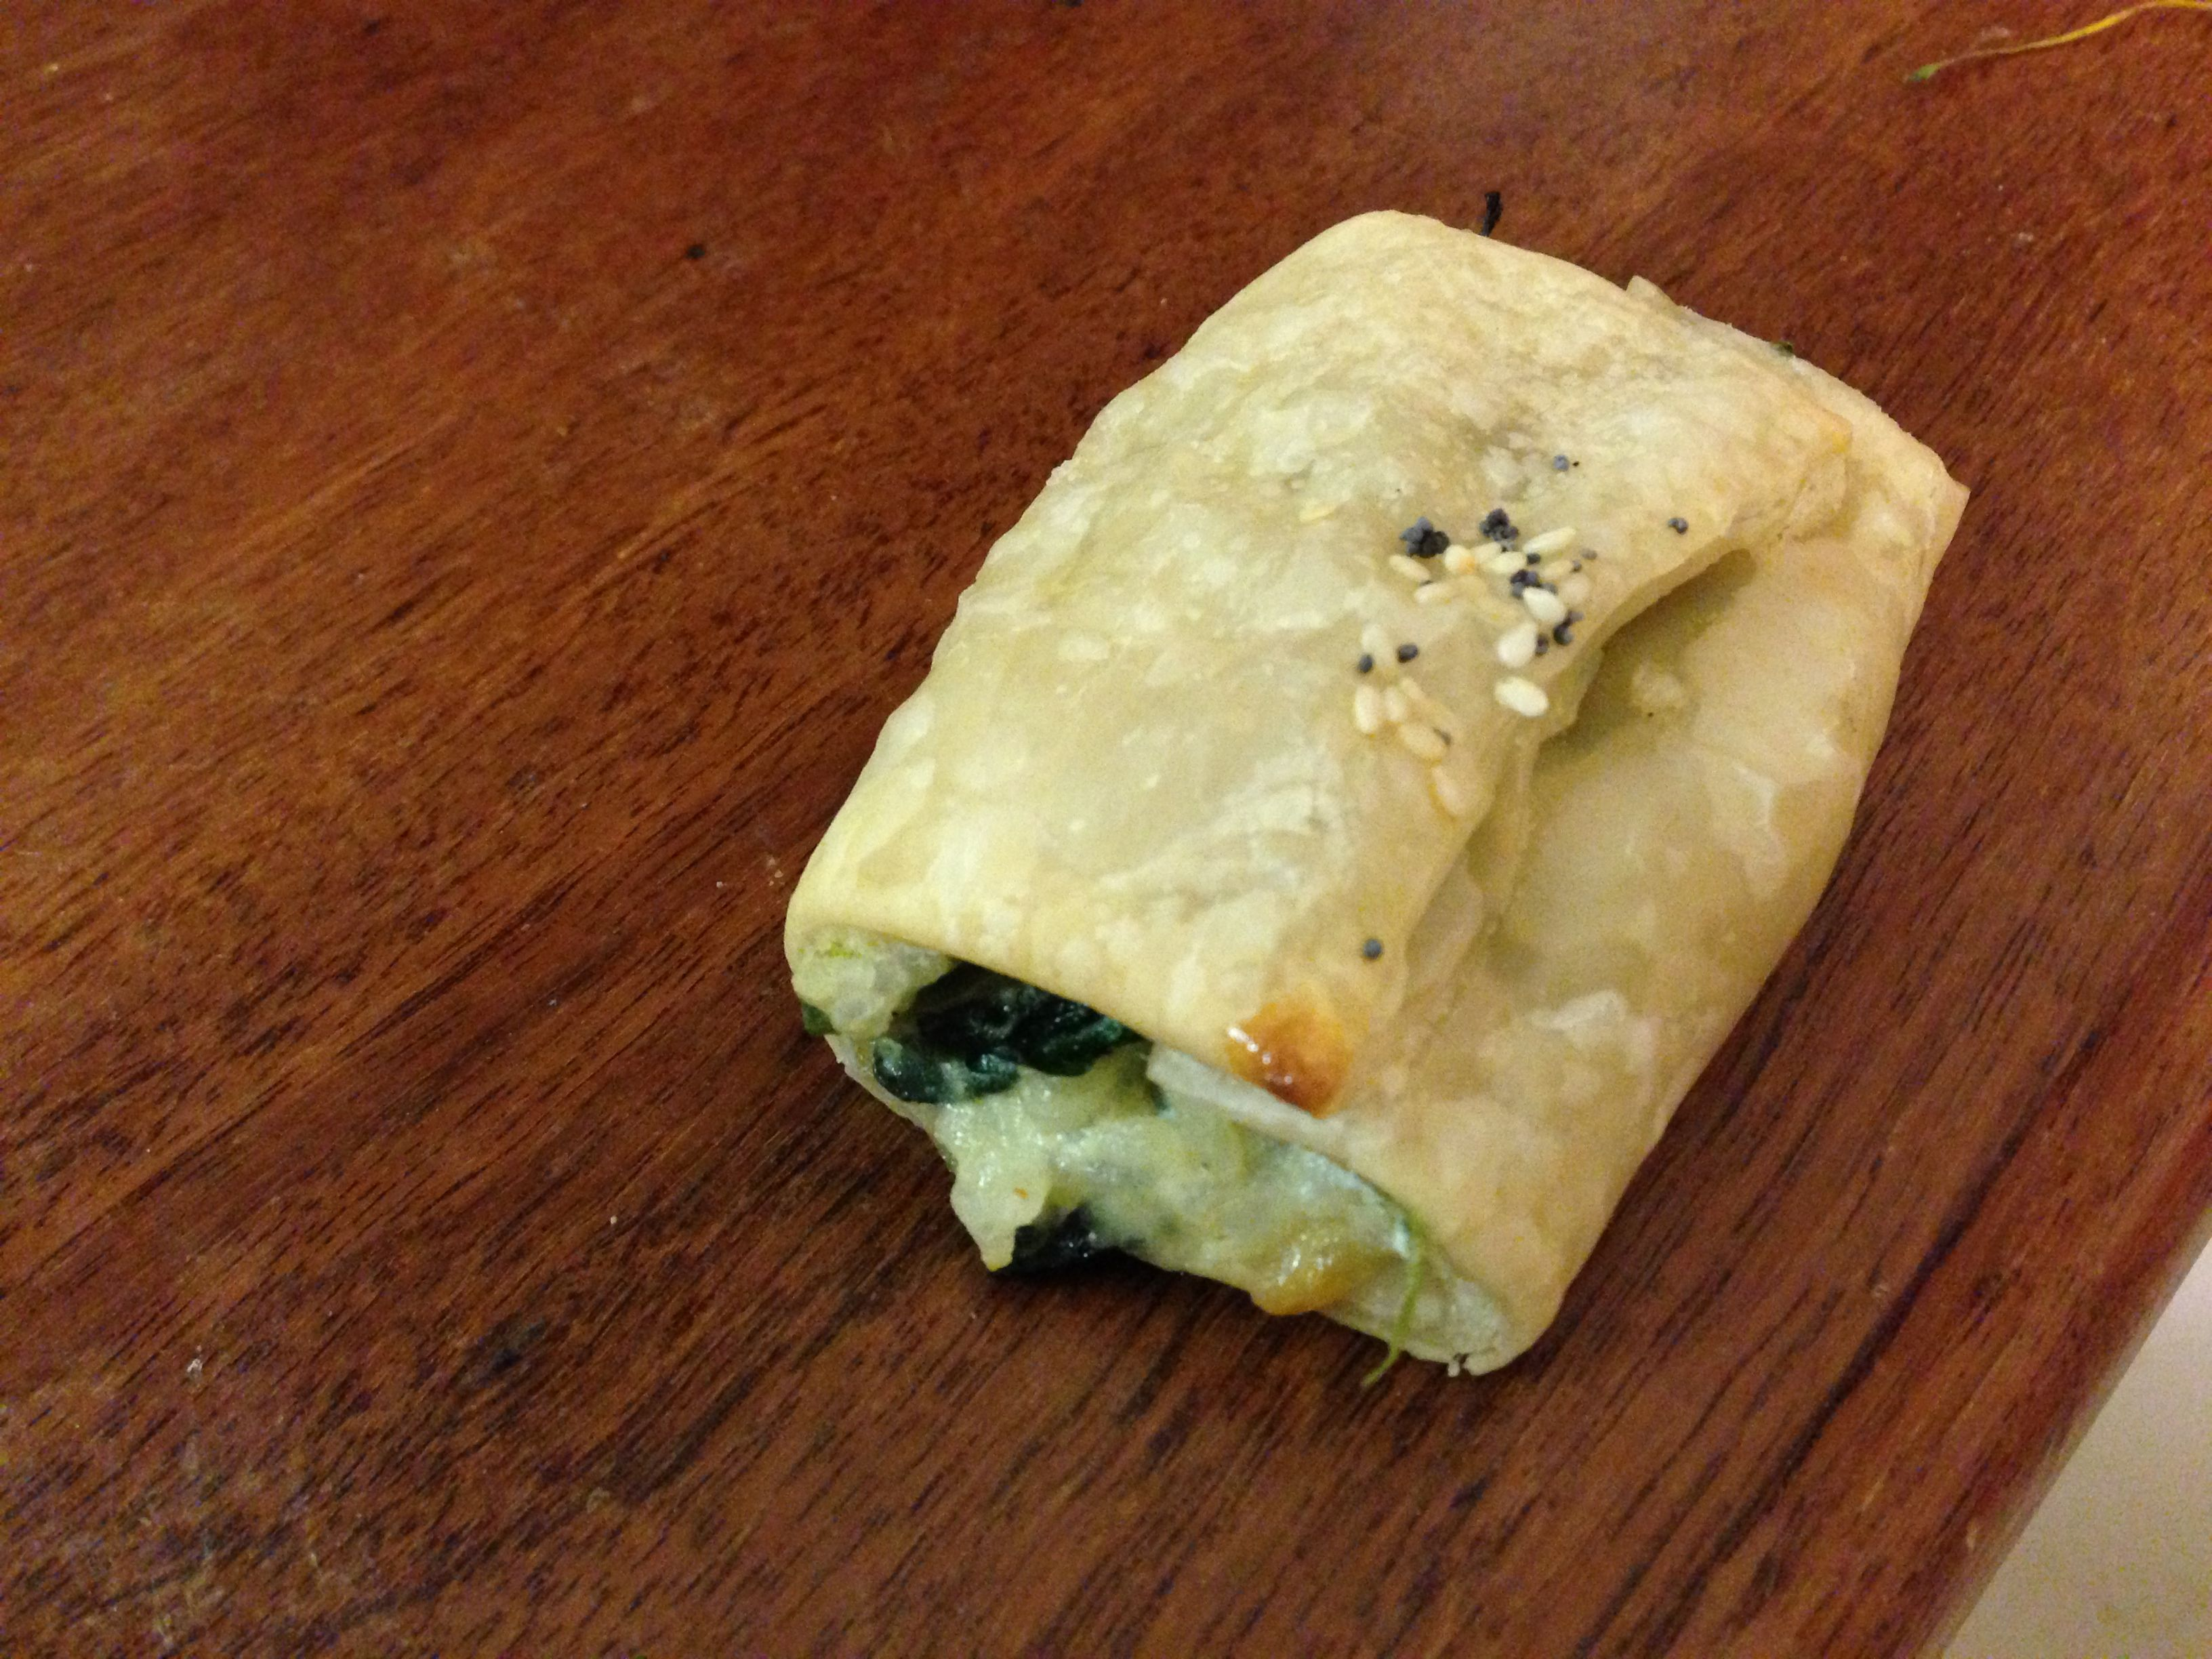 Spinach rolls 8 sheets puff pastry 500g fresh spinach leaves 1 tsp minced garlic 500g ricotta Grated rind 1 lemon 1 tsp nutmeg 100g g grated cheese 1 cup arborio rice seasame seeds  Preheat the oven to 180 deg Boil rice Rough cut spinach and boil. Drain. Fry the garlic & lemon rind. Add cooked spinach to infuse.  Mix ricotta, cheese, nutmeg ,spinach and rice.  Cut pastry sheets in half & fill with mixture.  Brush with milk and top with seasame seeds  Bake until pastry is golden about 15 min…